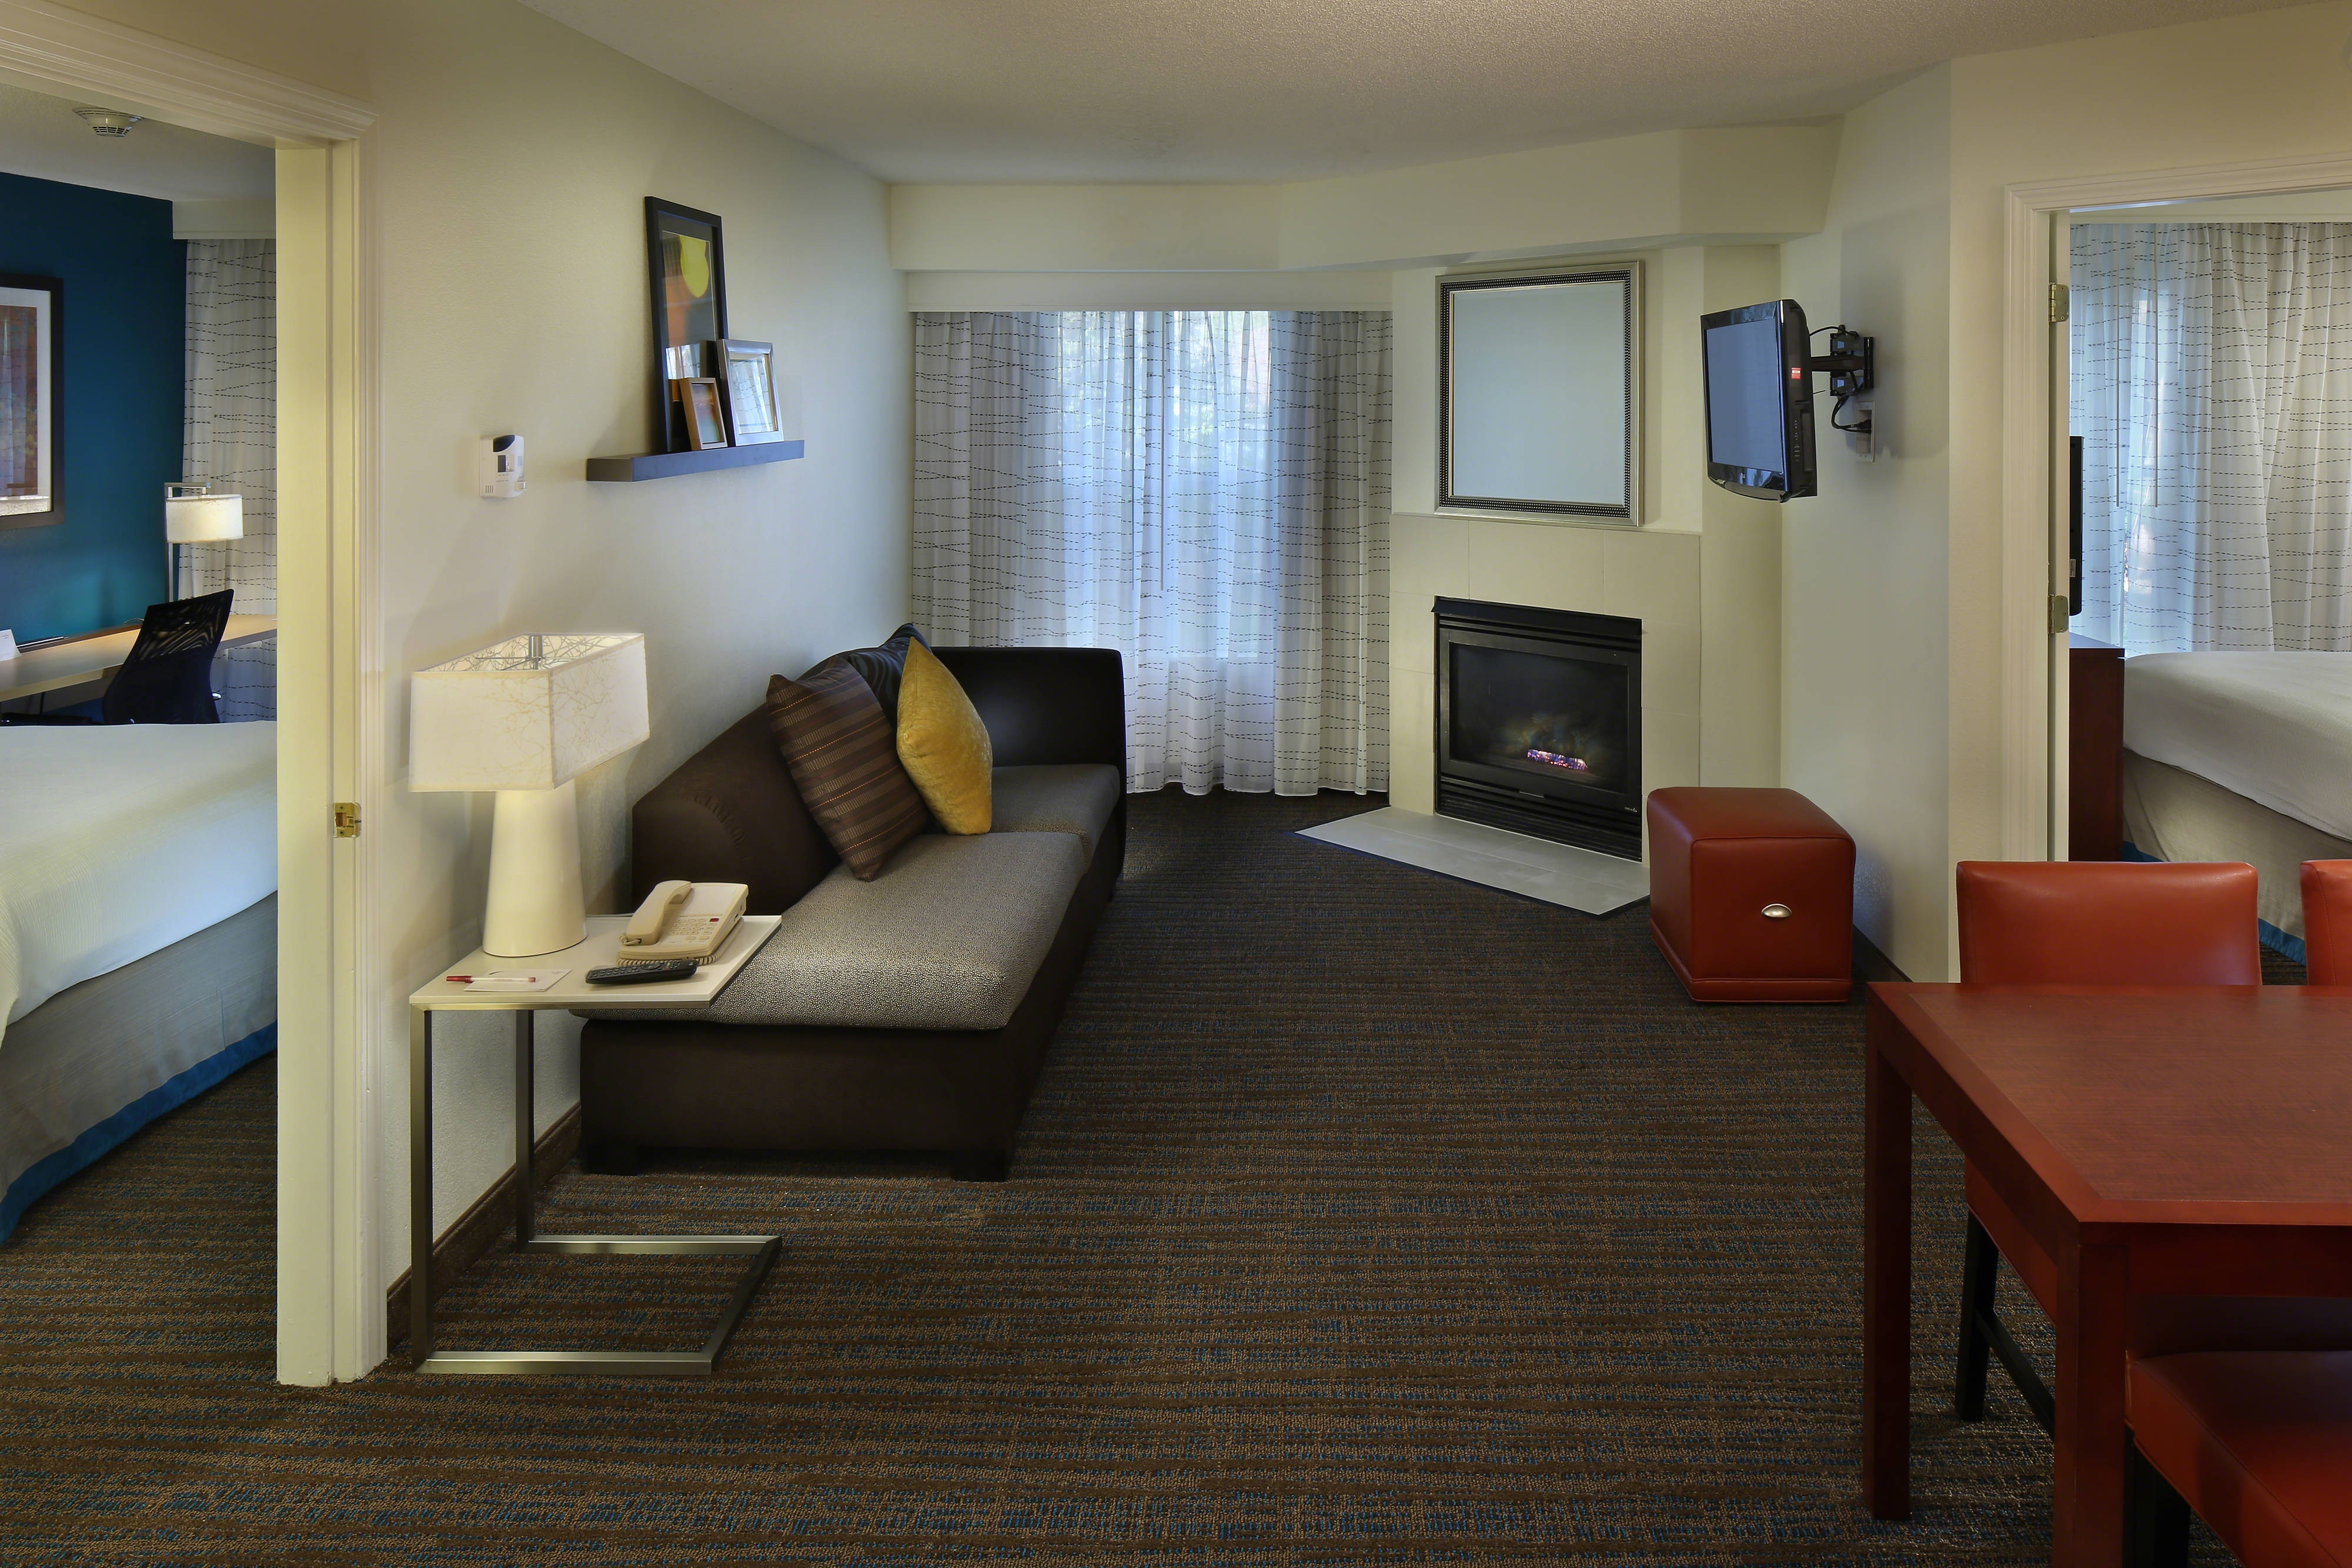 Mystic ct hotel residence inn mystic groton - Hotels that have 2 bedroom suites ...